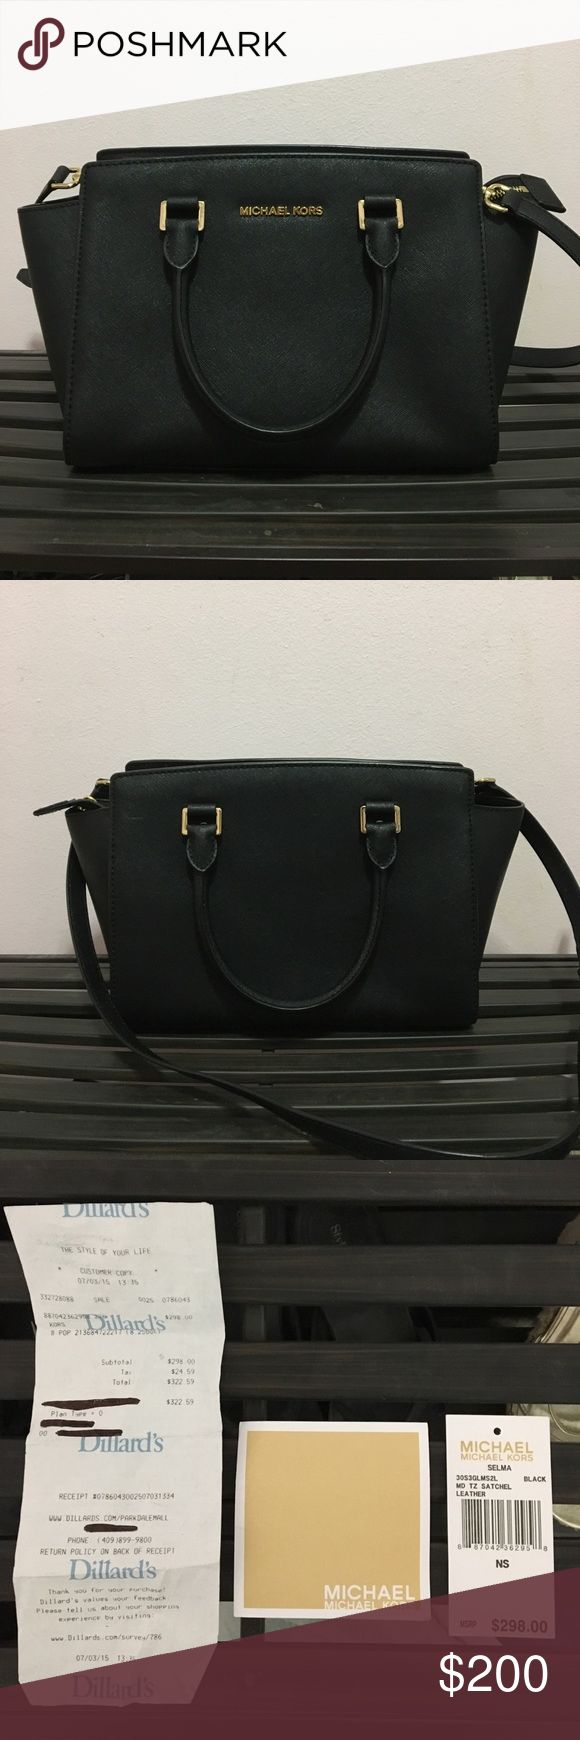 NWT Medium Michael Kors Selma great condition, only used a handful of times. re-poshing because i just don't use it enough. black bag with gold hardware. very minimal signs of wear. there are some scratches on the feet & a couple scratches on the back like the one shown in the third picture. comes with dust bag & the original receipt & tags. long shoulder strap is included. 100% authentic. Michael Kors Bags